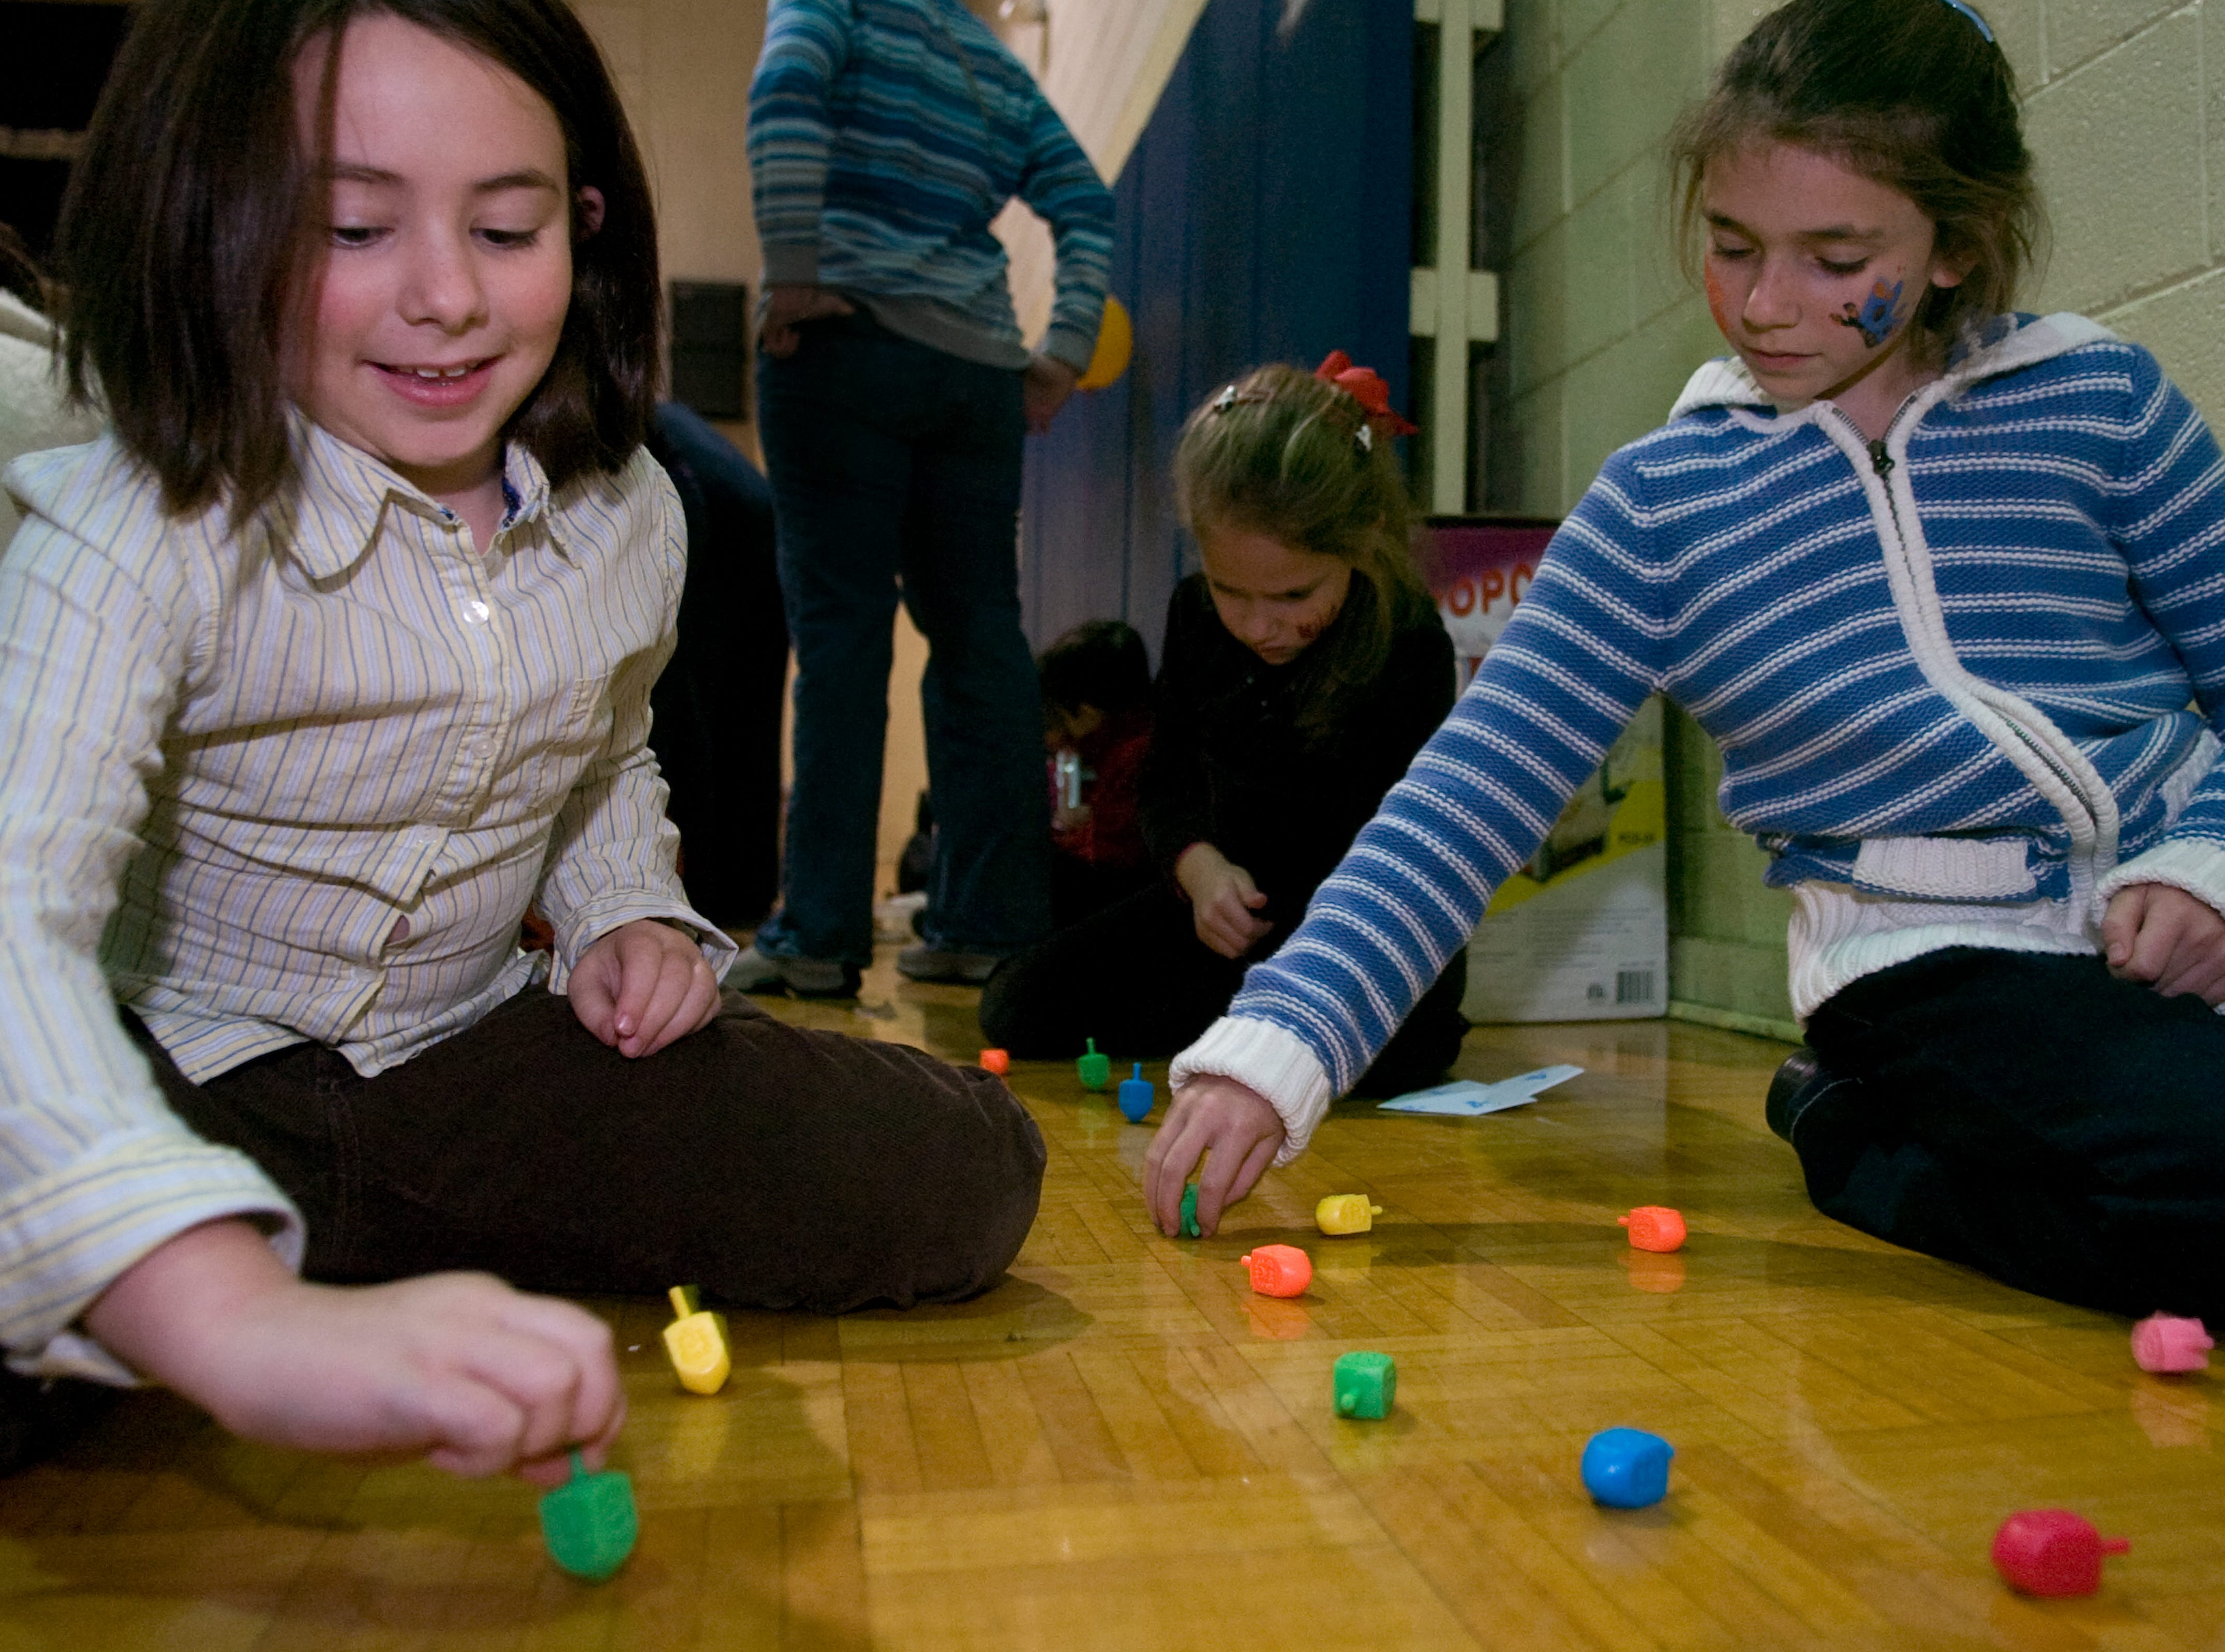 From left, Lillian Schweitzer, 8, Tifannie Rosen, 6, and her sister Arielle Rosen, 9, spin dreidels on Sunday, Dec 13, 2009 at the Arnstein Jewish Community Center during the third annual Menorah Madness celebration. The event collected donations of canned goods to be given to Second Harvest Food Bank.